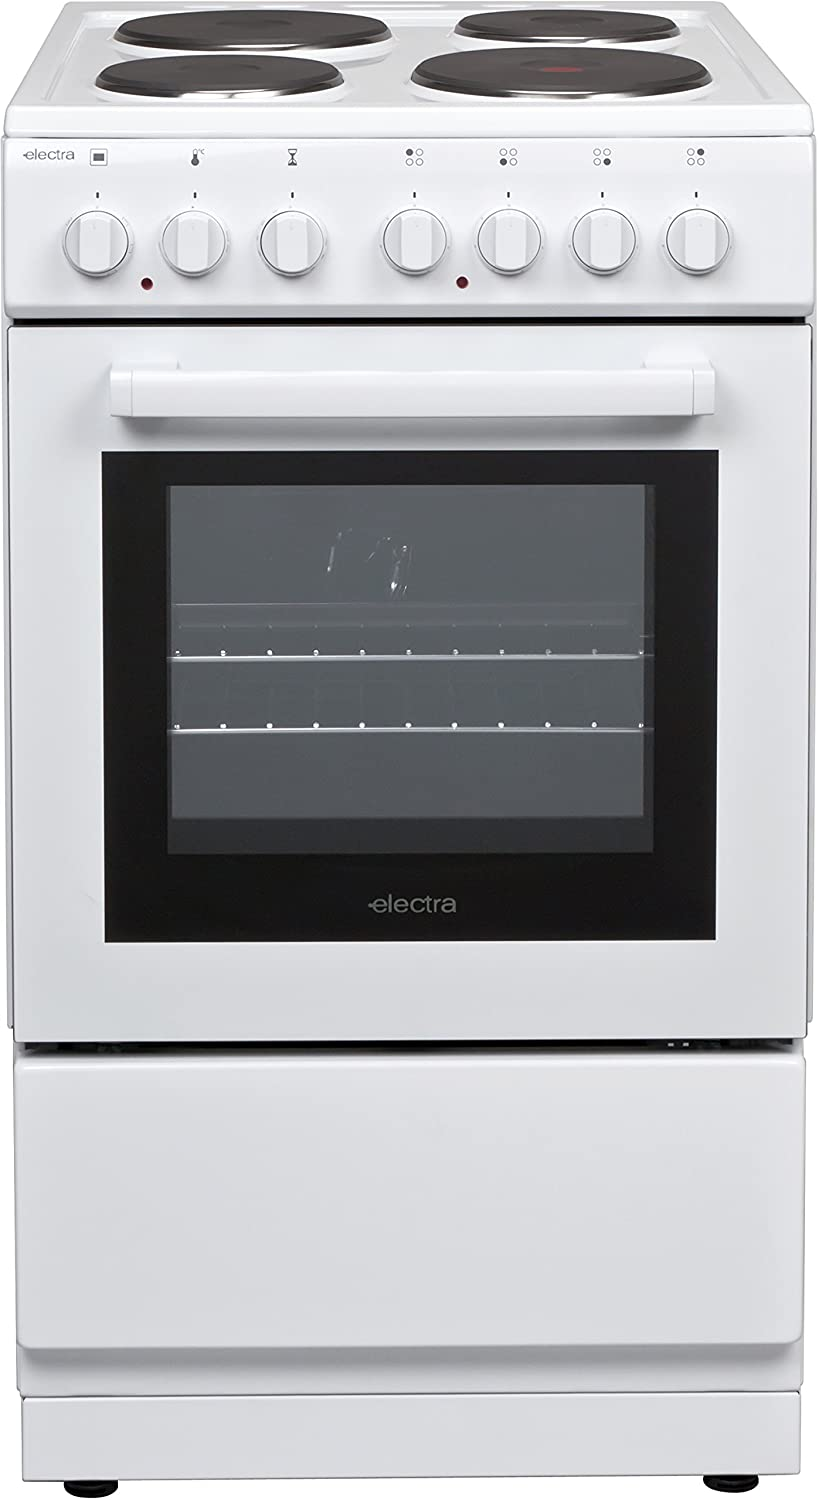 Electra SE50W Freestanding B Rated Electric Cooker - White AO